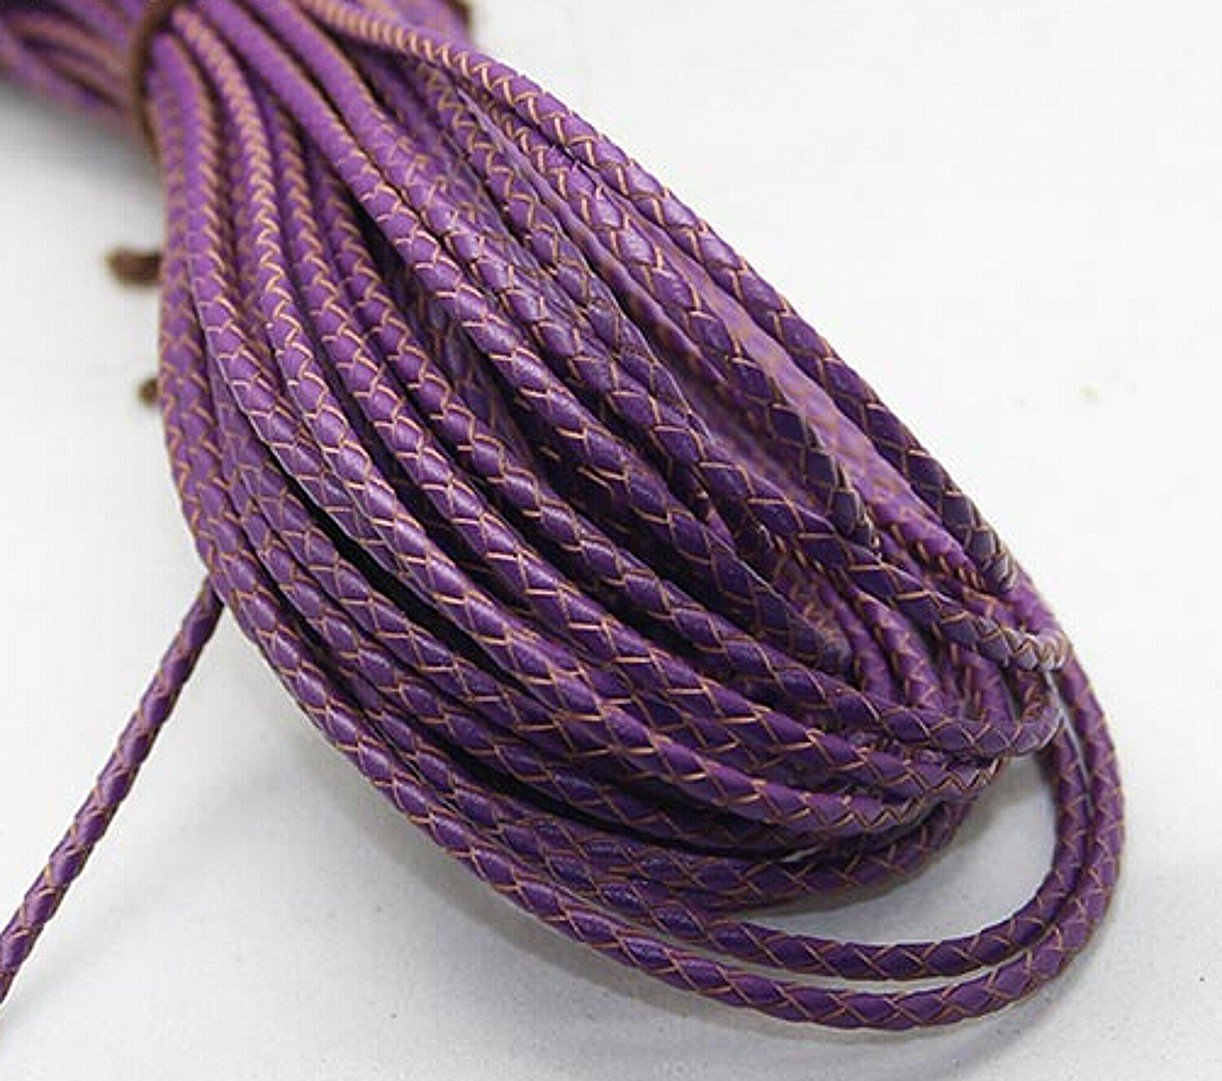 Purple CHENGYIDA 2 Metters//6.6 ft 3mm Diameter Round Genuine Braided Leather Cord Necklace Bracelet DIY Jewelry Accessories